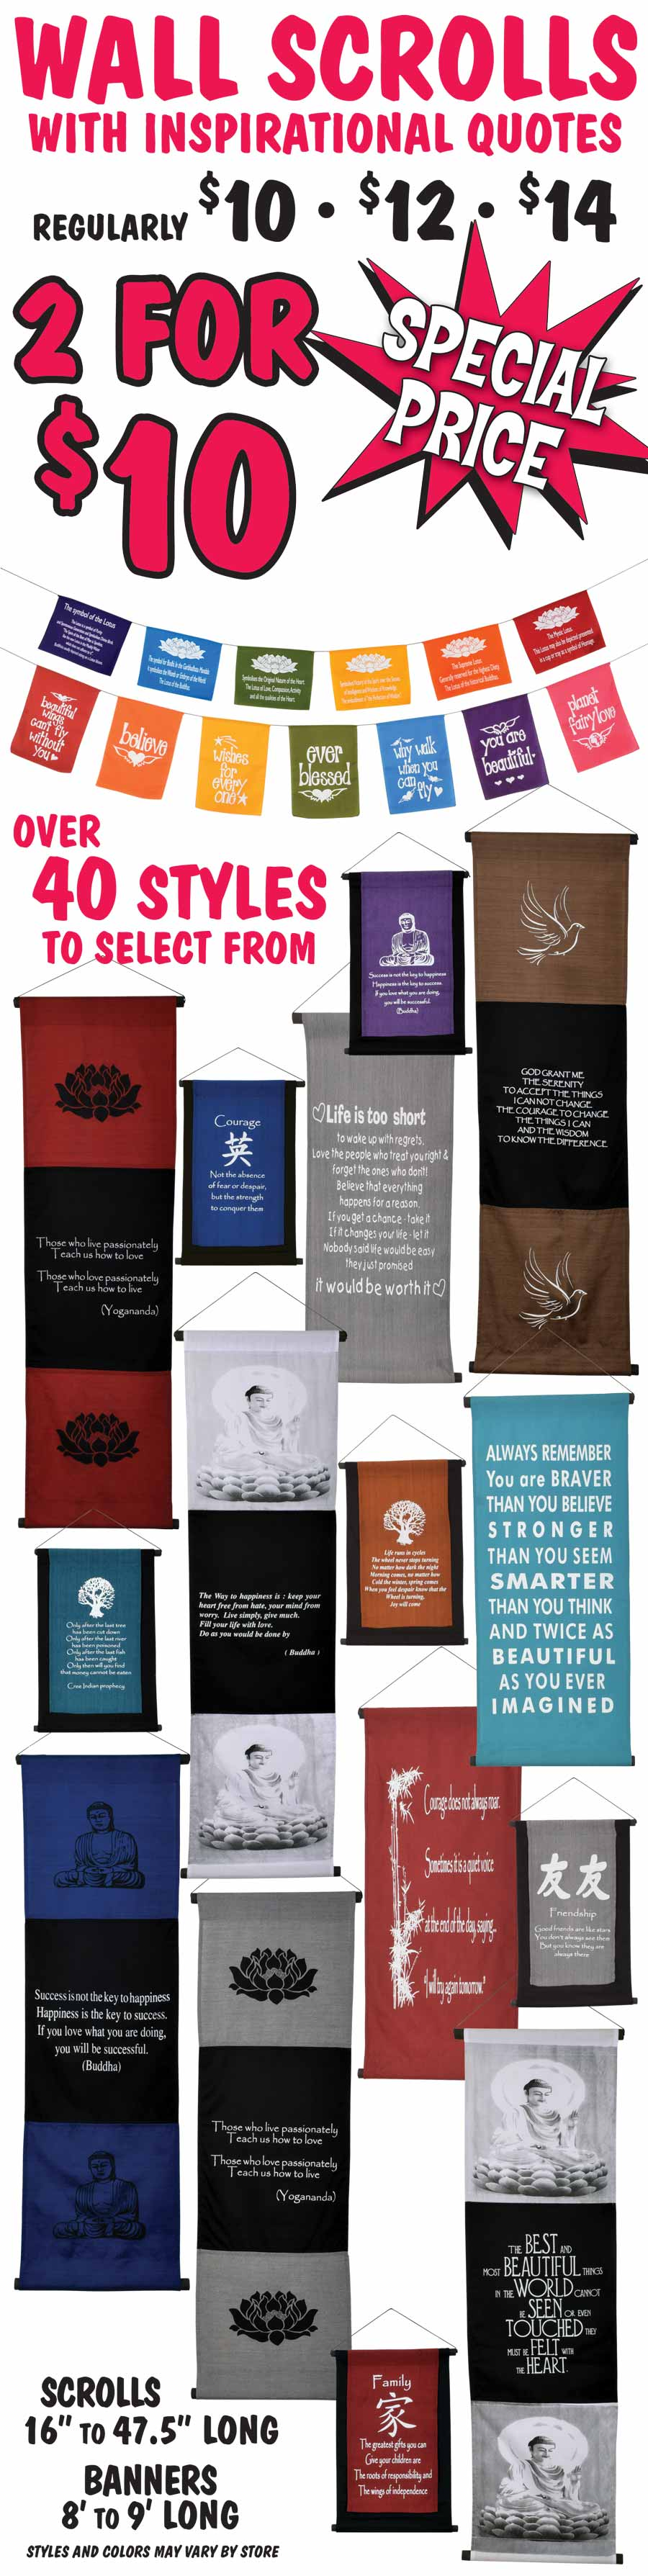 Wall Scrolls with Inspirational Quotes - 2 for $10 - over 40 different styles